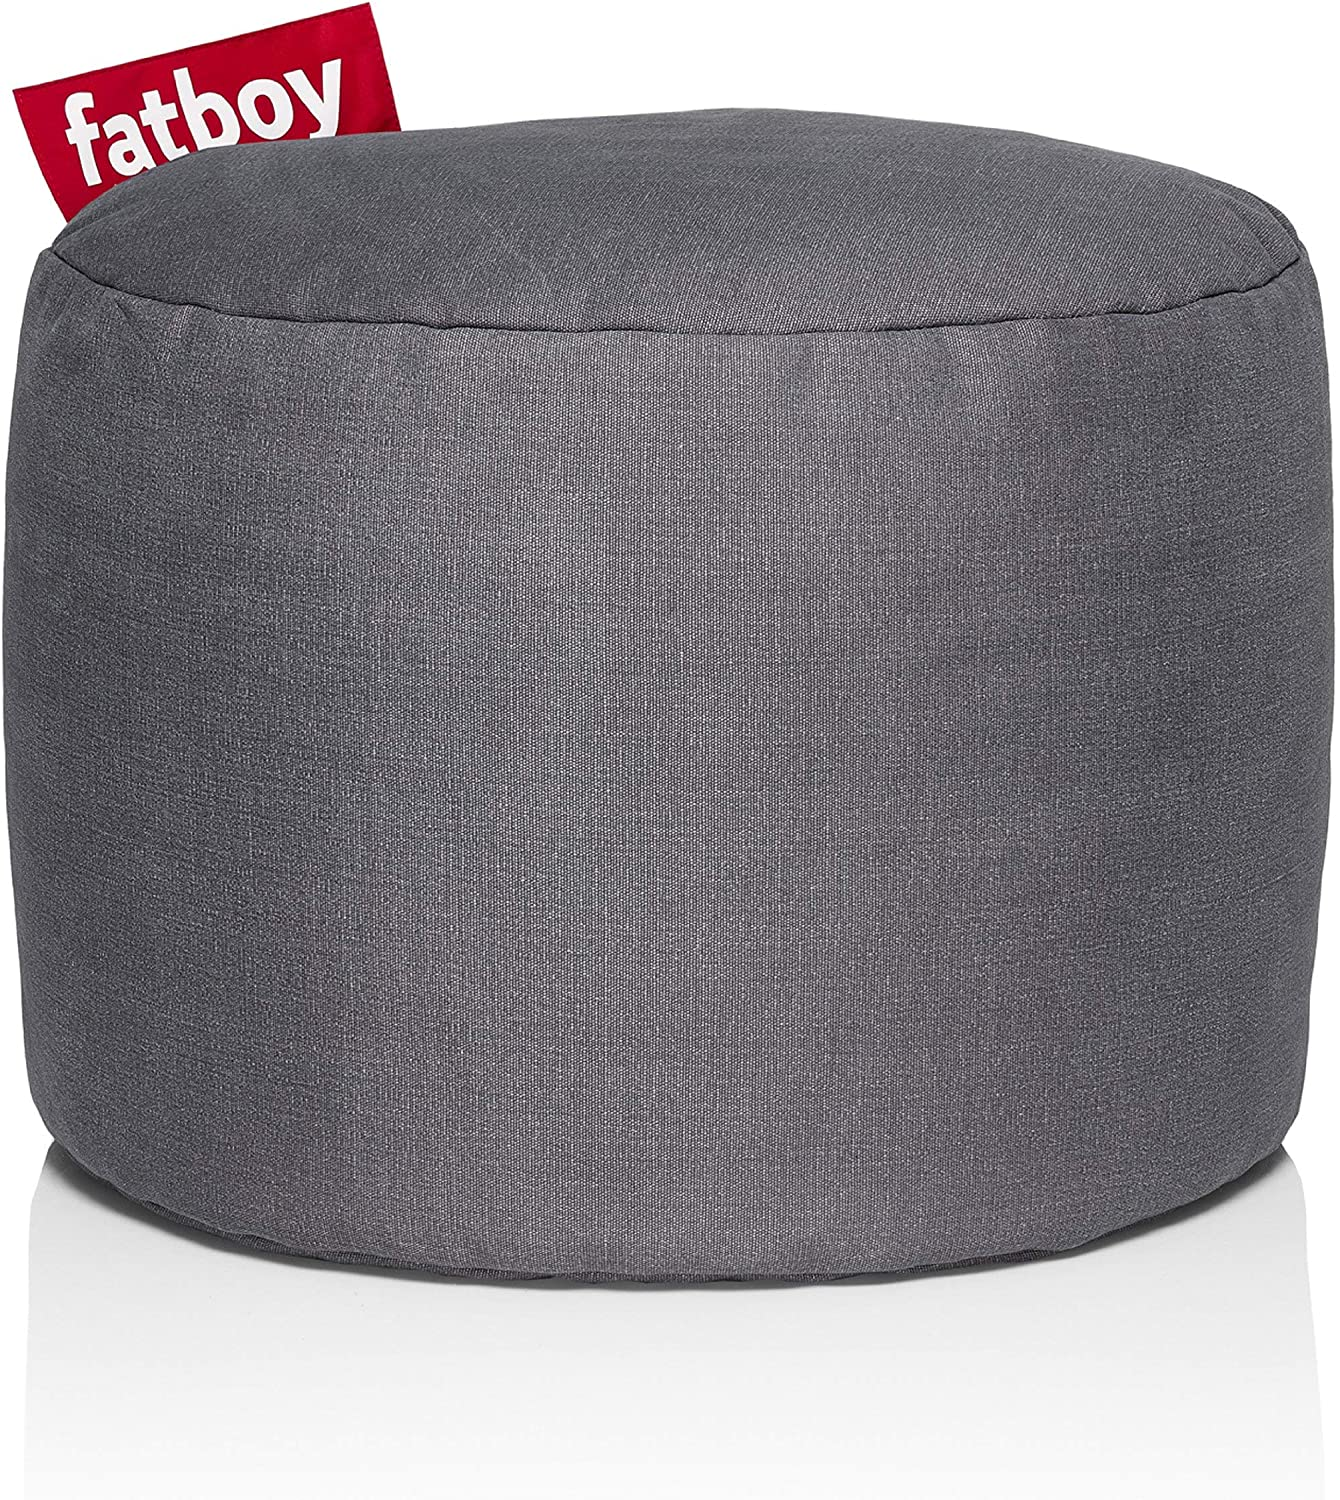 Fatboy PNTSTW-Gry Point Stonewashed Bean Bag, Grey